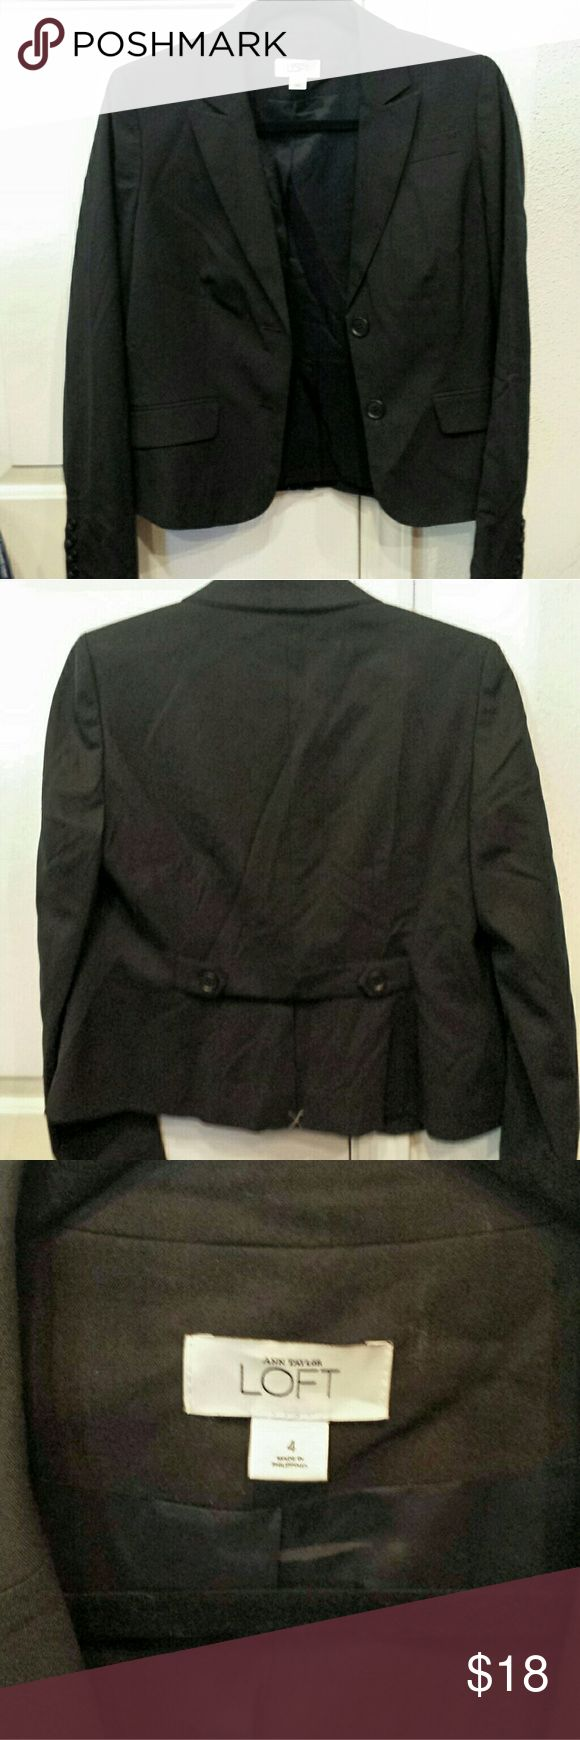 Anne Taylor Loft light wool 2 button Office Jacket NWOT. Bought it but forgot I did, never worn. Back of the Jacket vent is still closed with x mark with white thread from the store, u need to cut it off when u get it. Right side collar is missing 2 stitches 4 show, it's only for design not needed 4 funtion but u can easliy use your needle n bk threds to fix it, quick! 95% light wool 5% elastin, really nice work jacket! Ann Taylor Loft Jackets & Coats Blazers